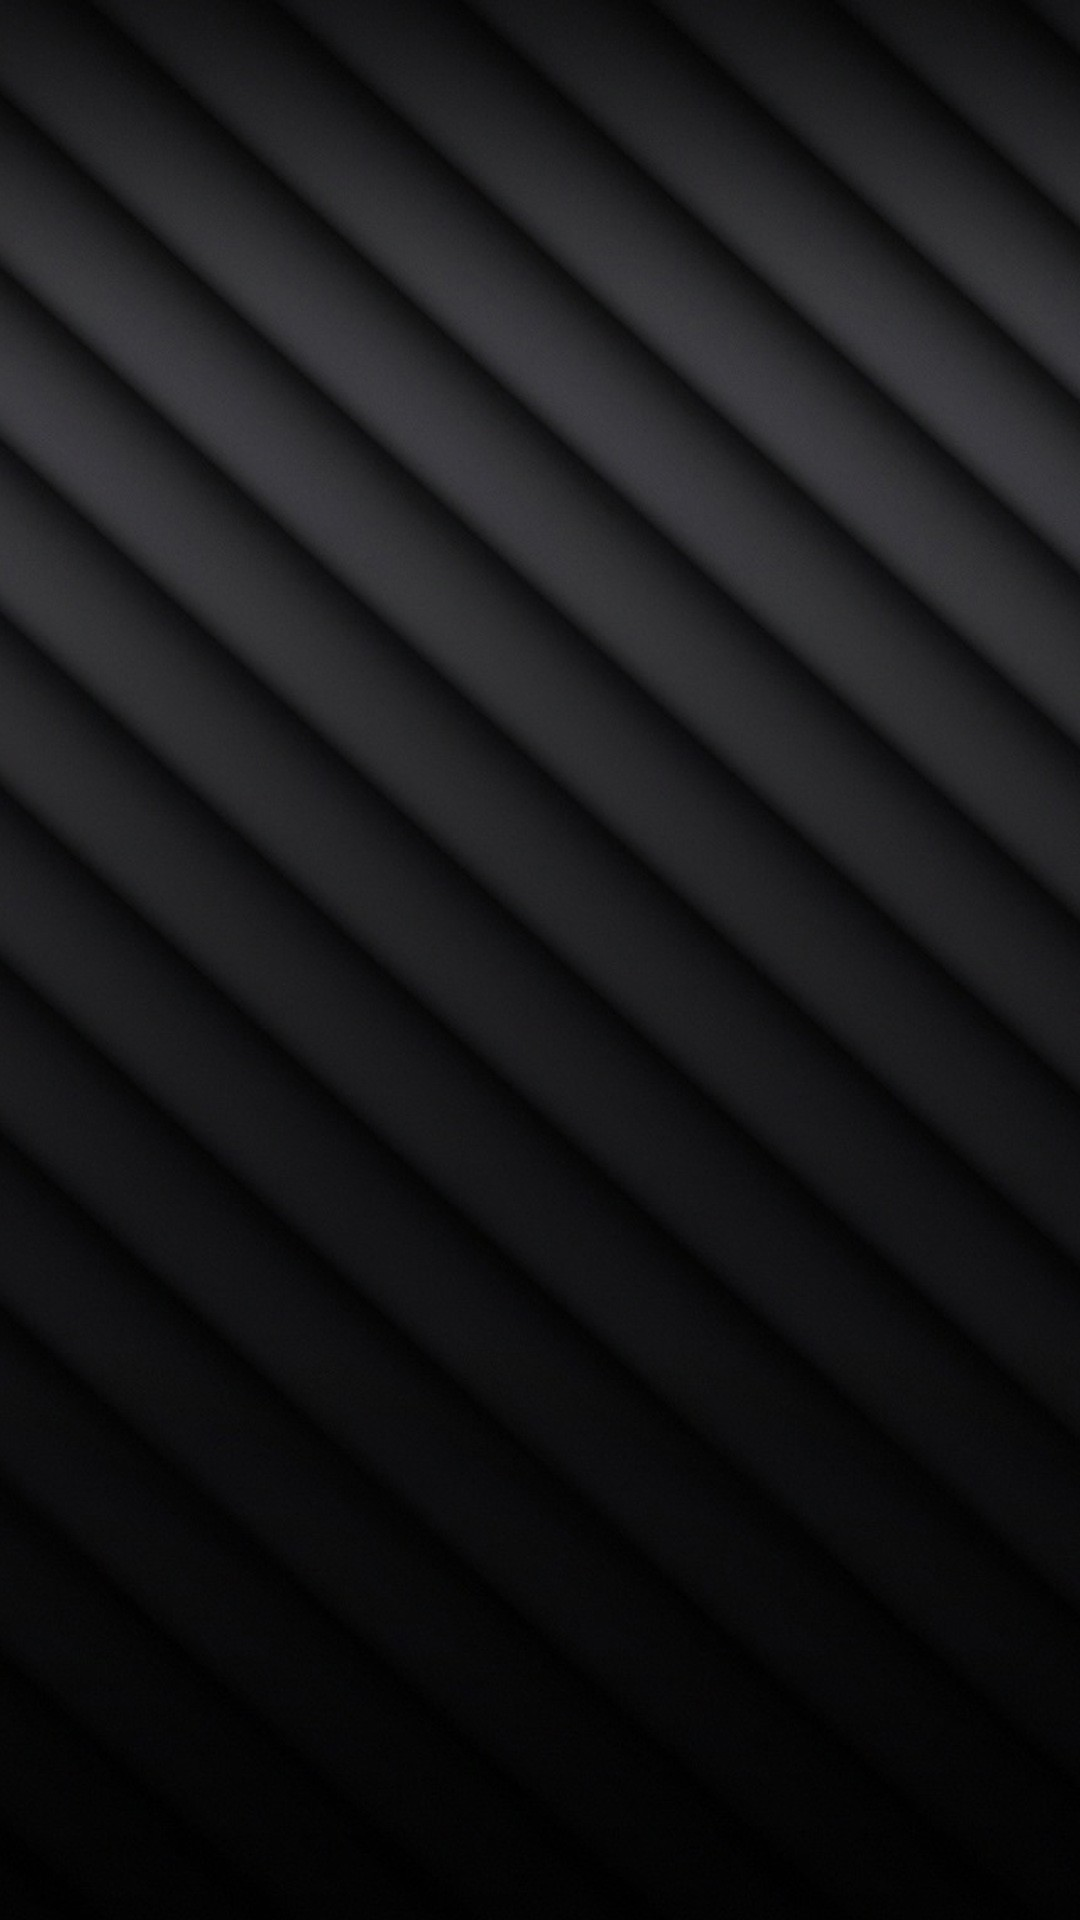 Solid Black Wallpaper Download Free Awesome Hd